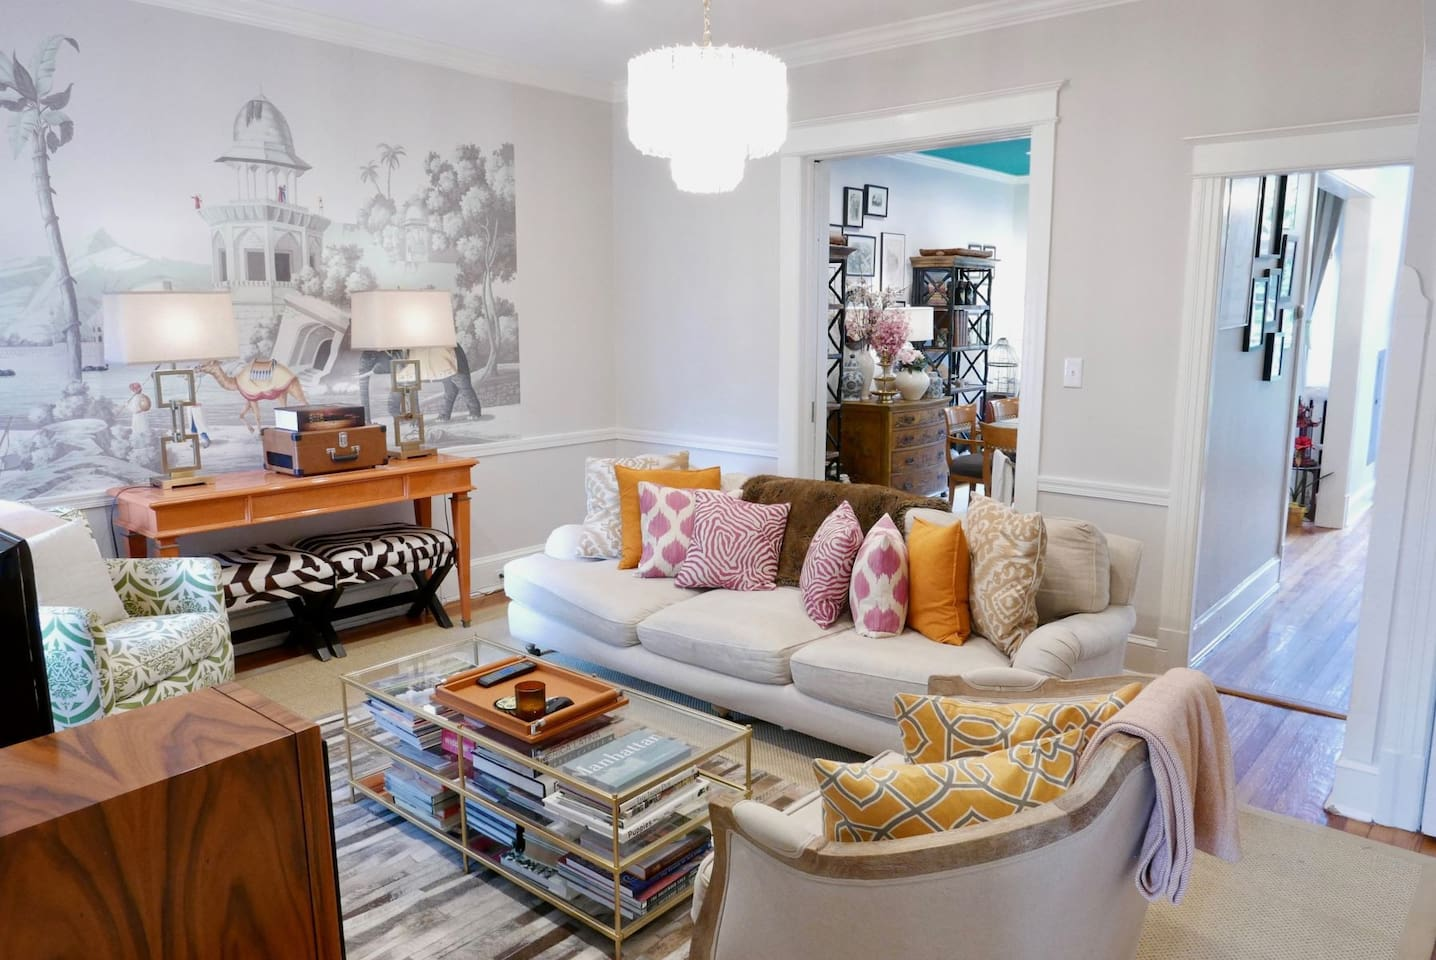 Stunning living room with original artwork creating a Bollywood aesthetic